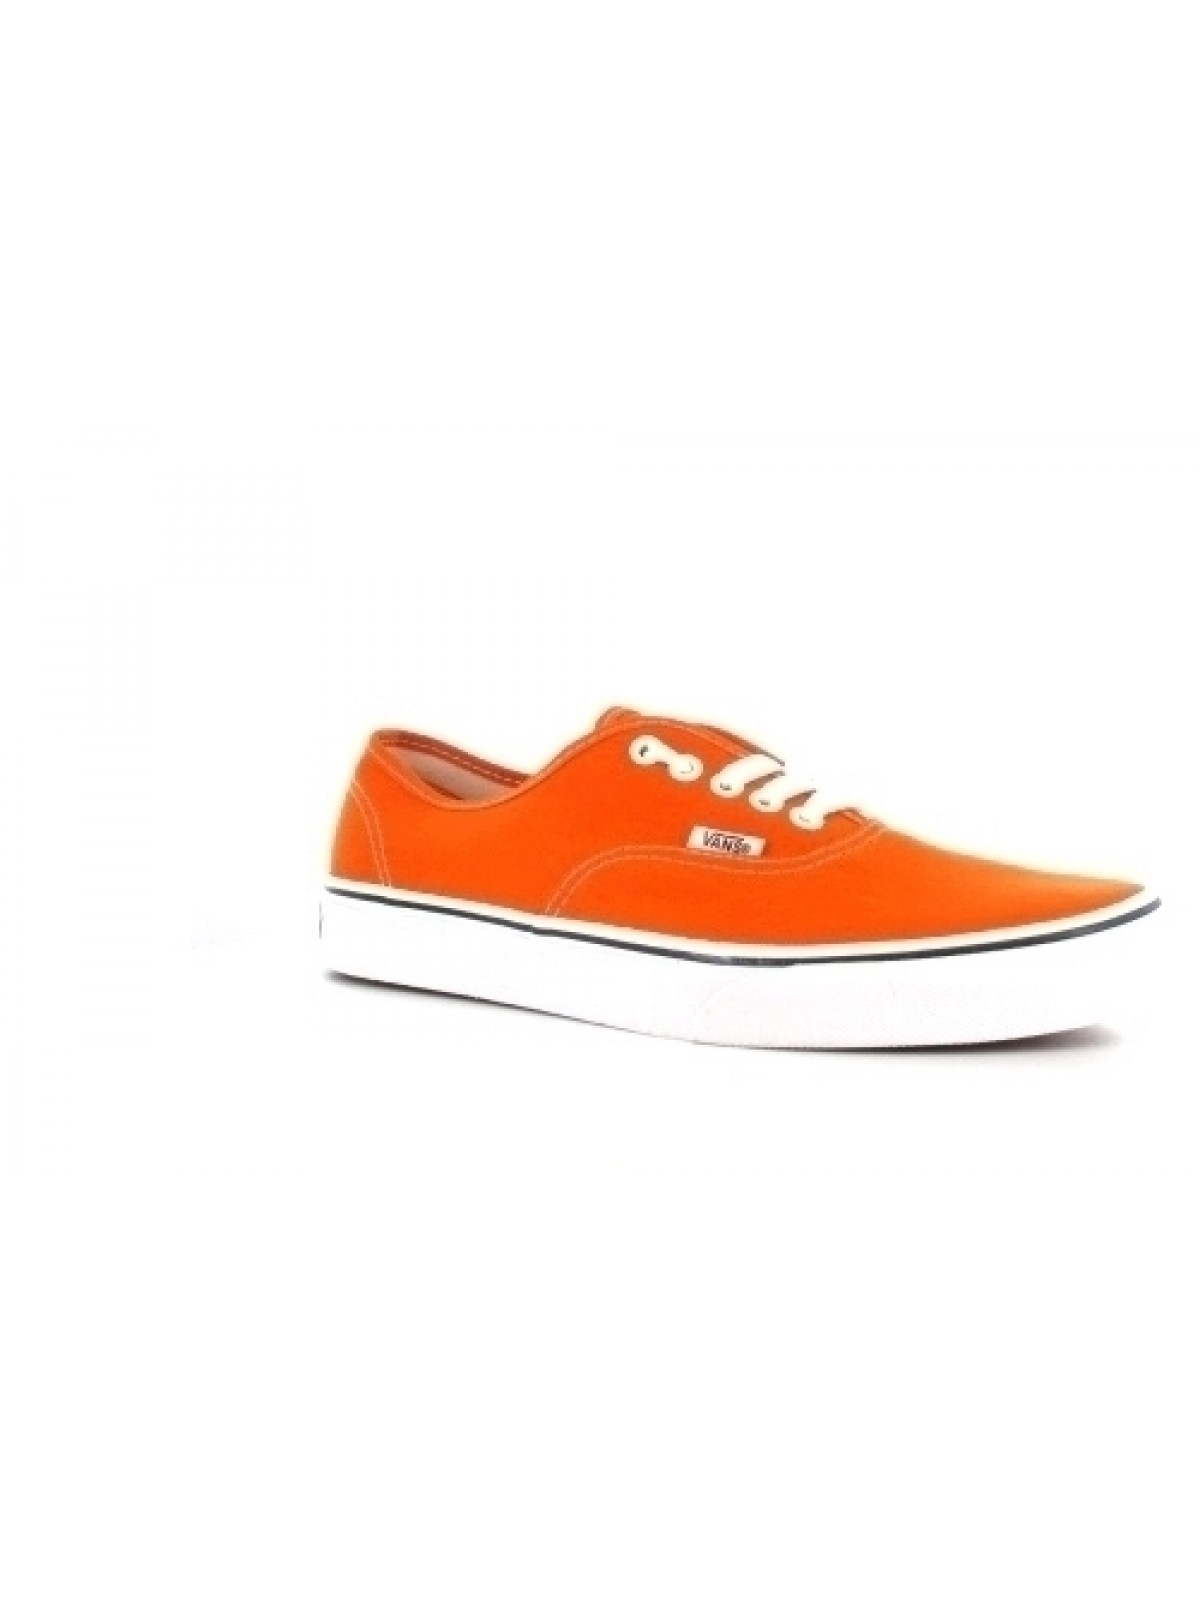 Vans Authentic toile orange